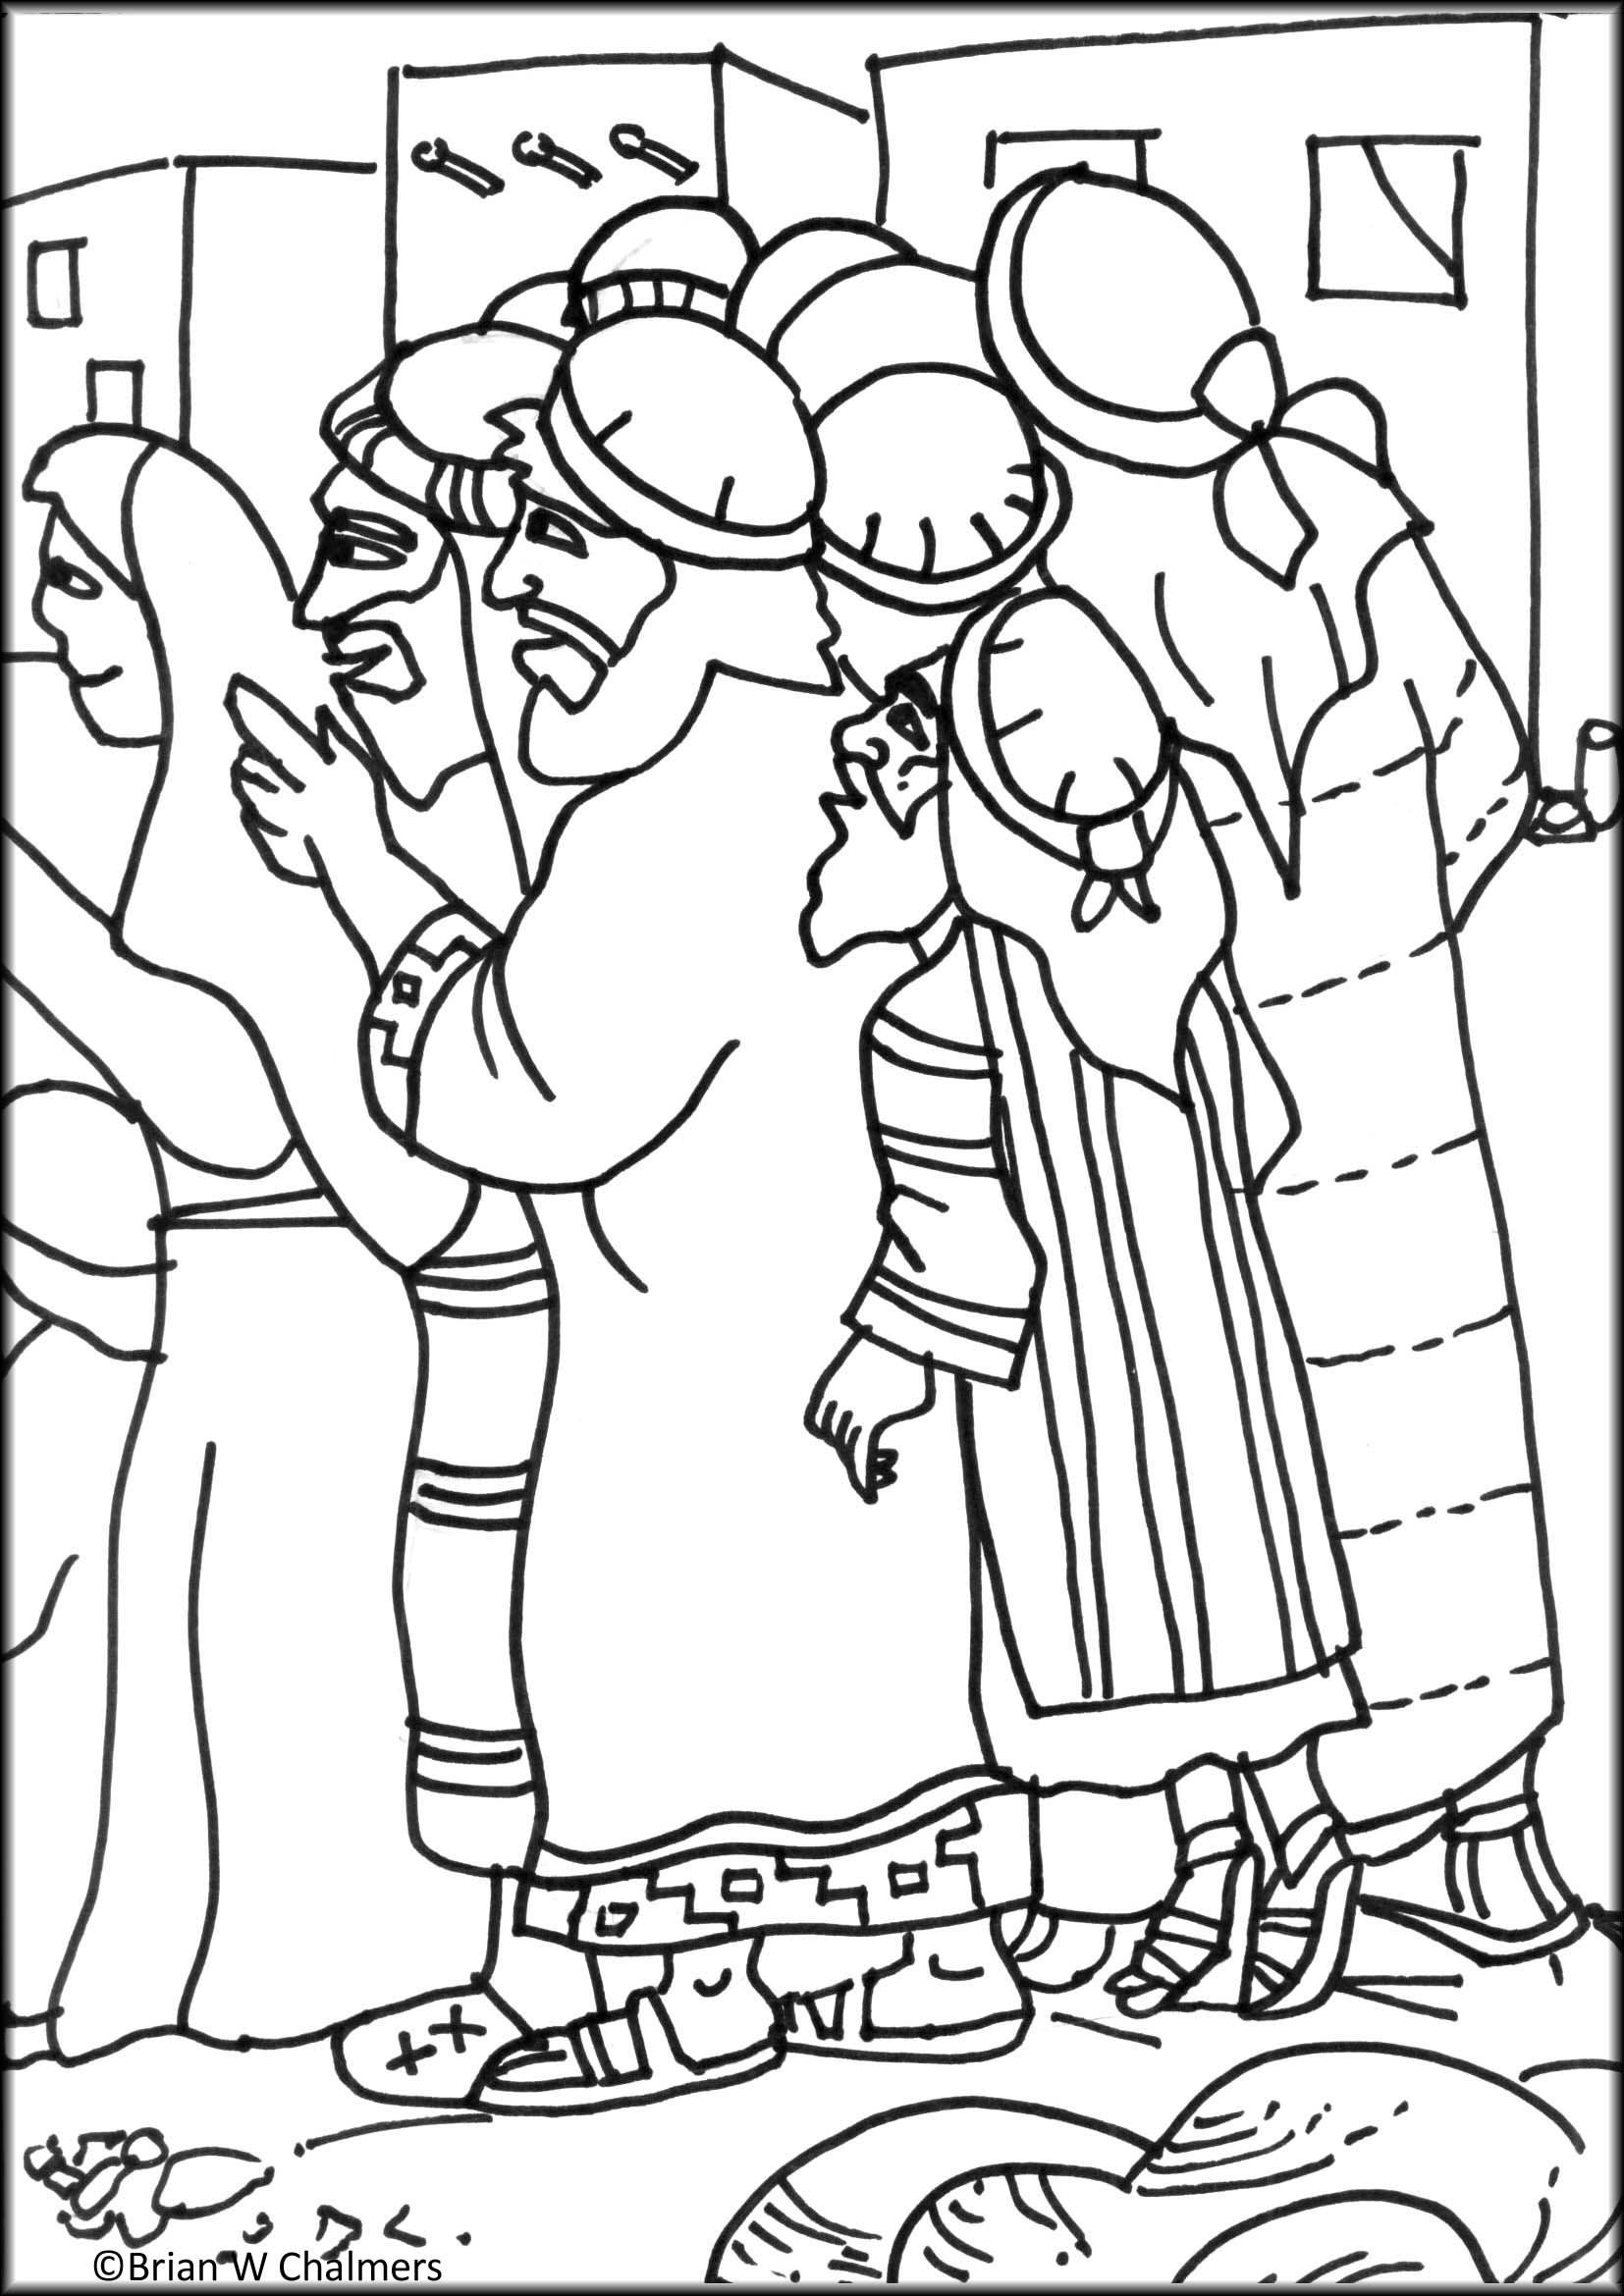 Childrens bible stories and coloring pages - Zaccheus Coloring Page Bible Story